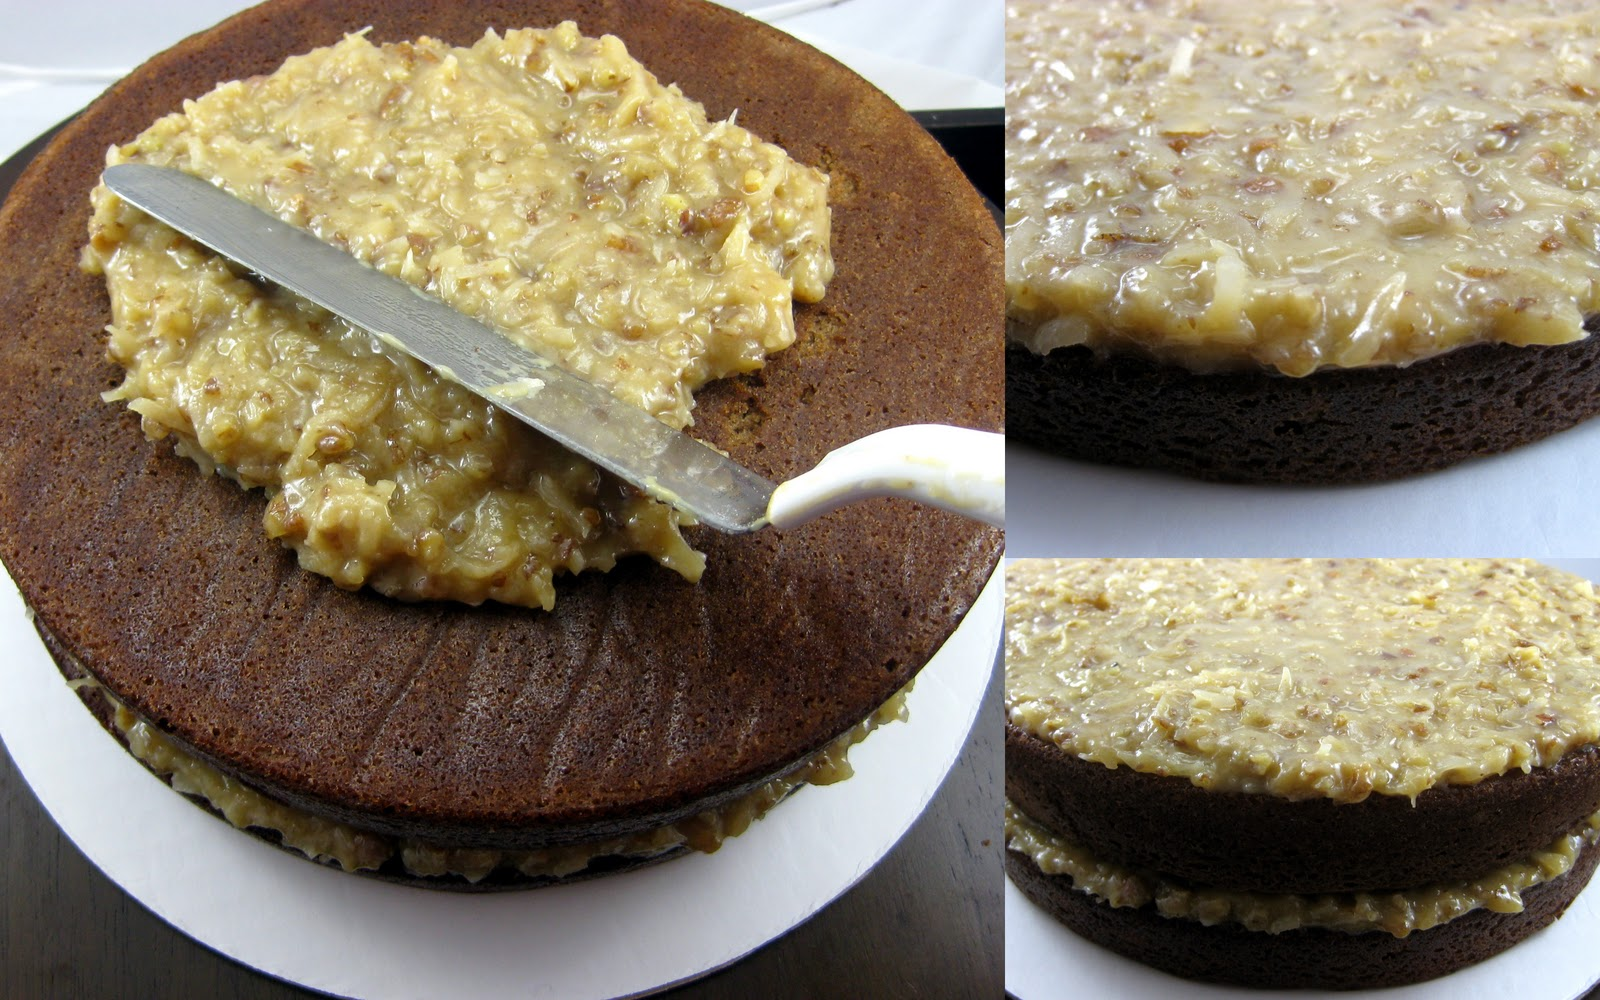 German Chocolate Layer Cake Recipe With Coconut Pecan Frosting ...